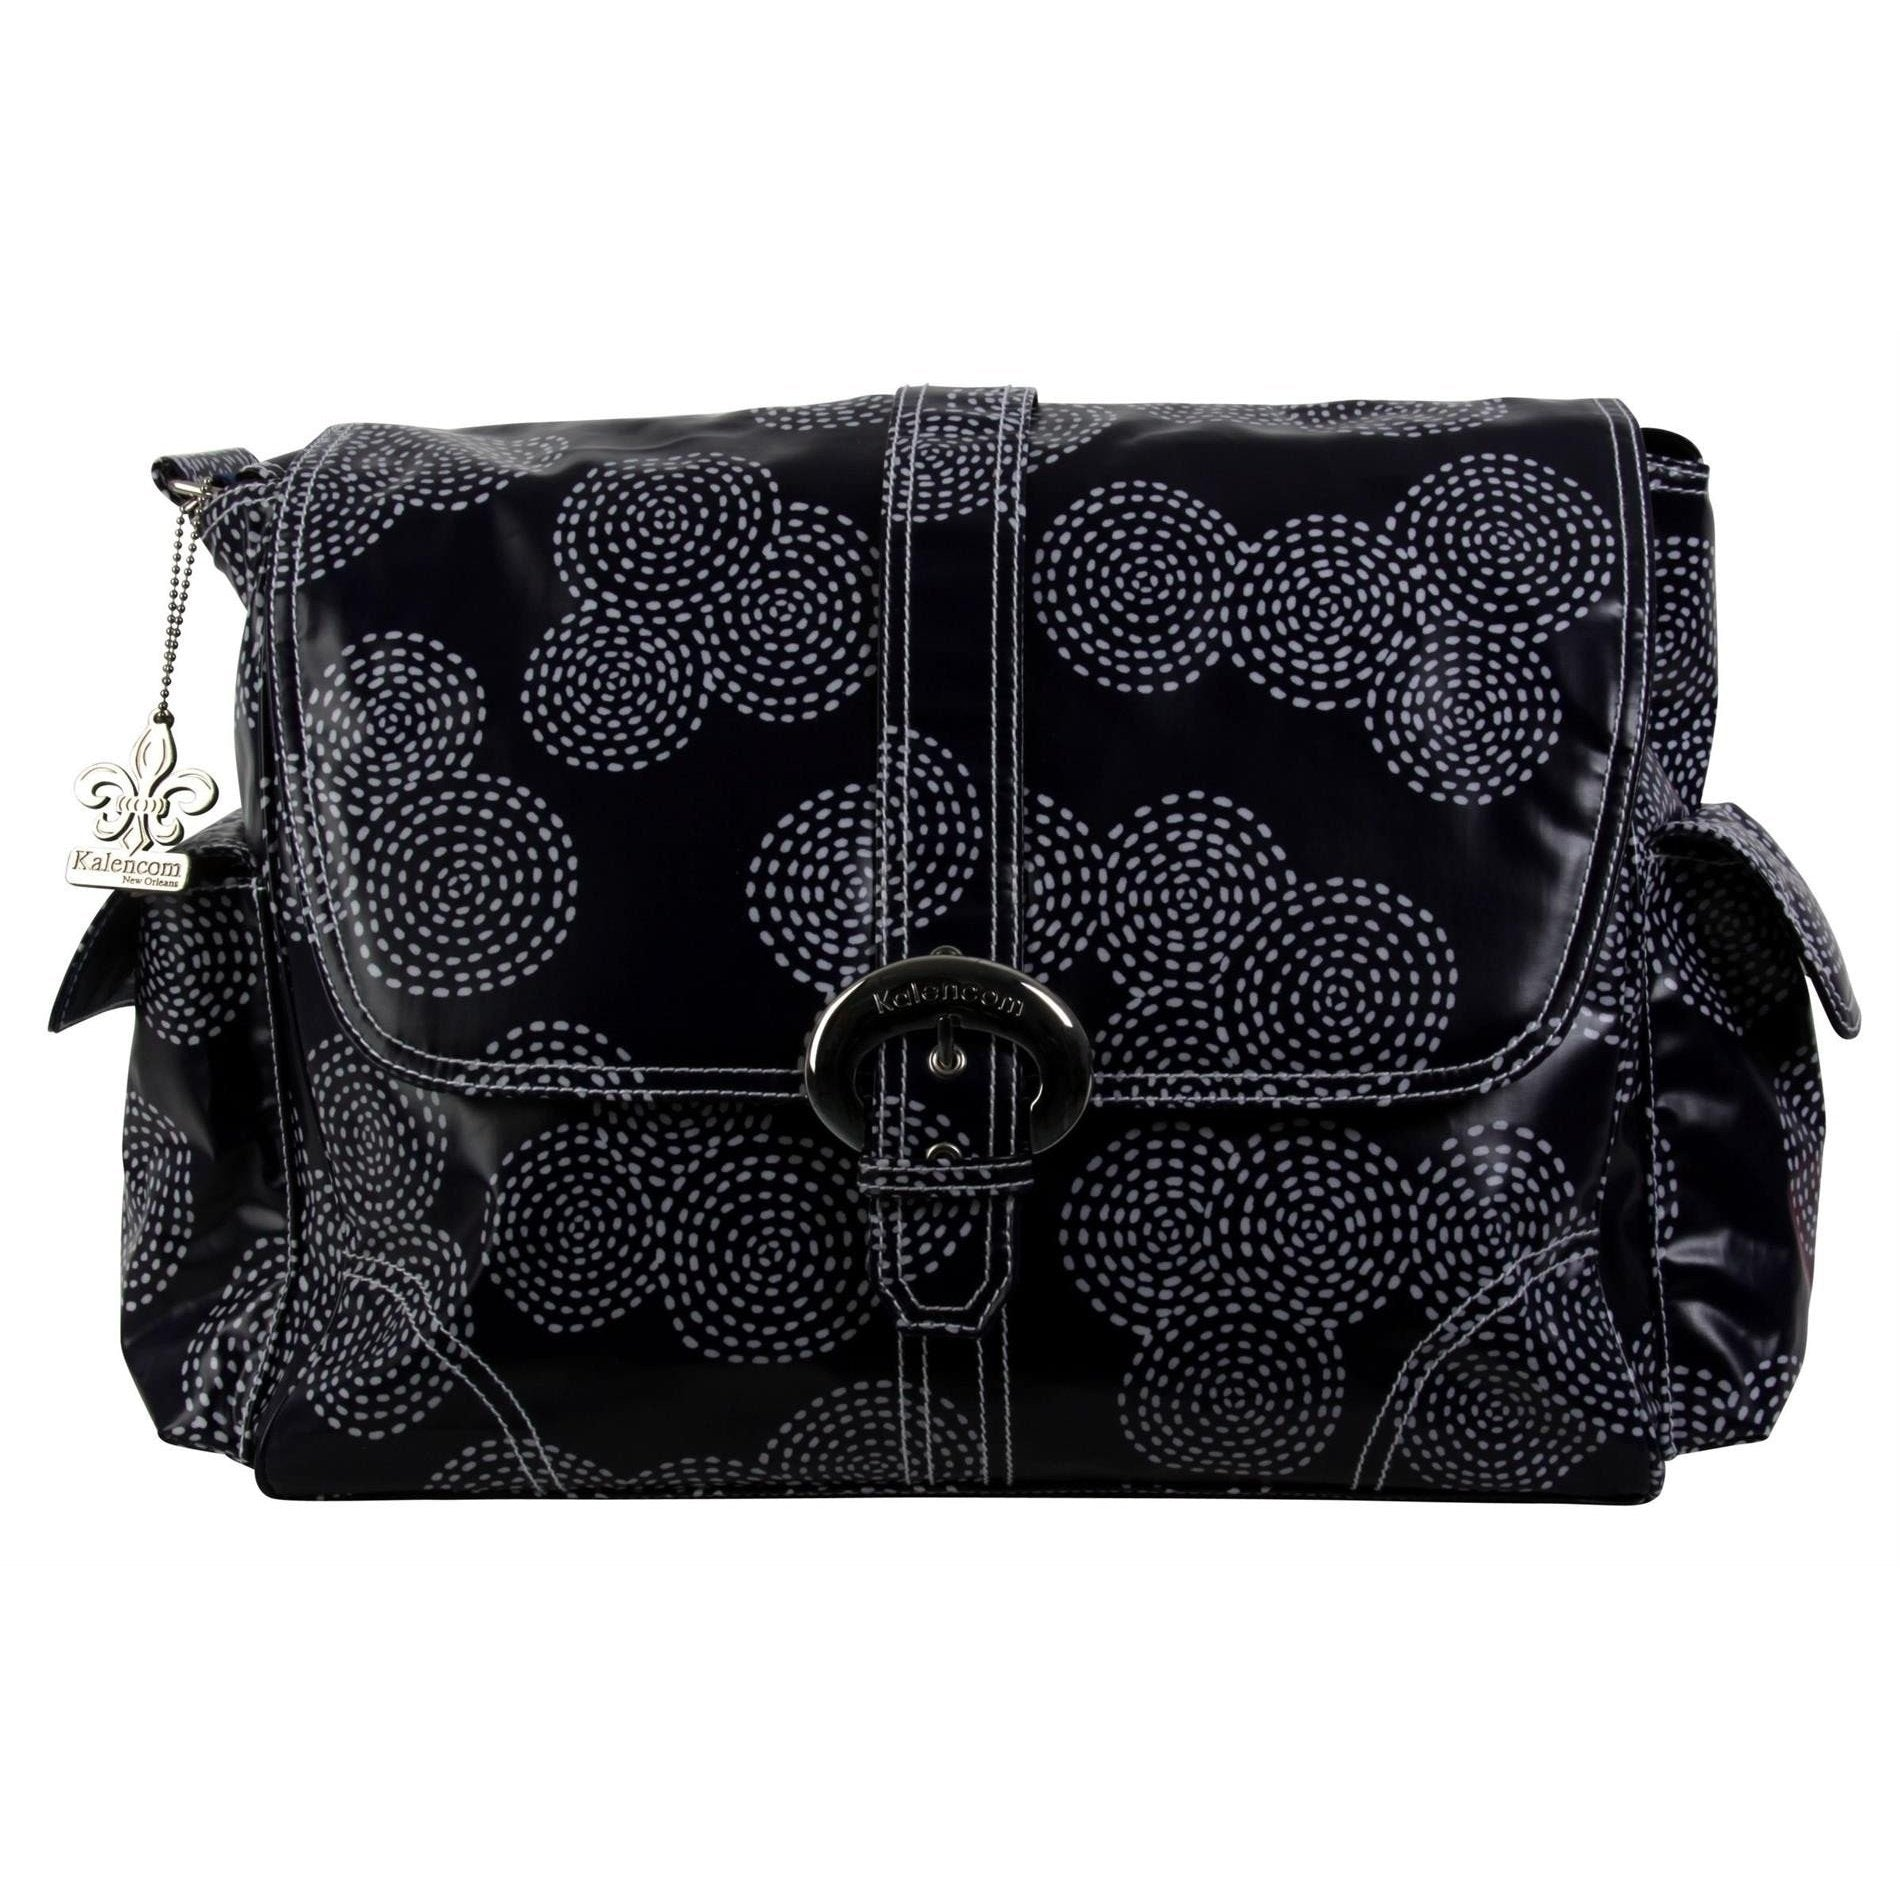 Stitches - Navy Matte Coated Buckle Diaper Bag | Style 2960 - Kalencom-Diaper Bags-Jack and Jill Boutique